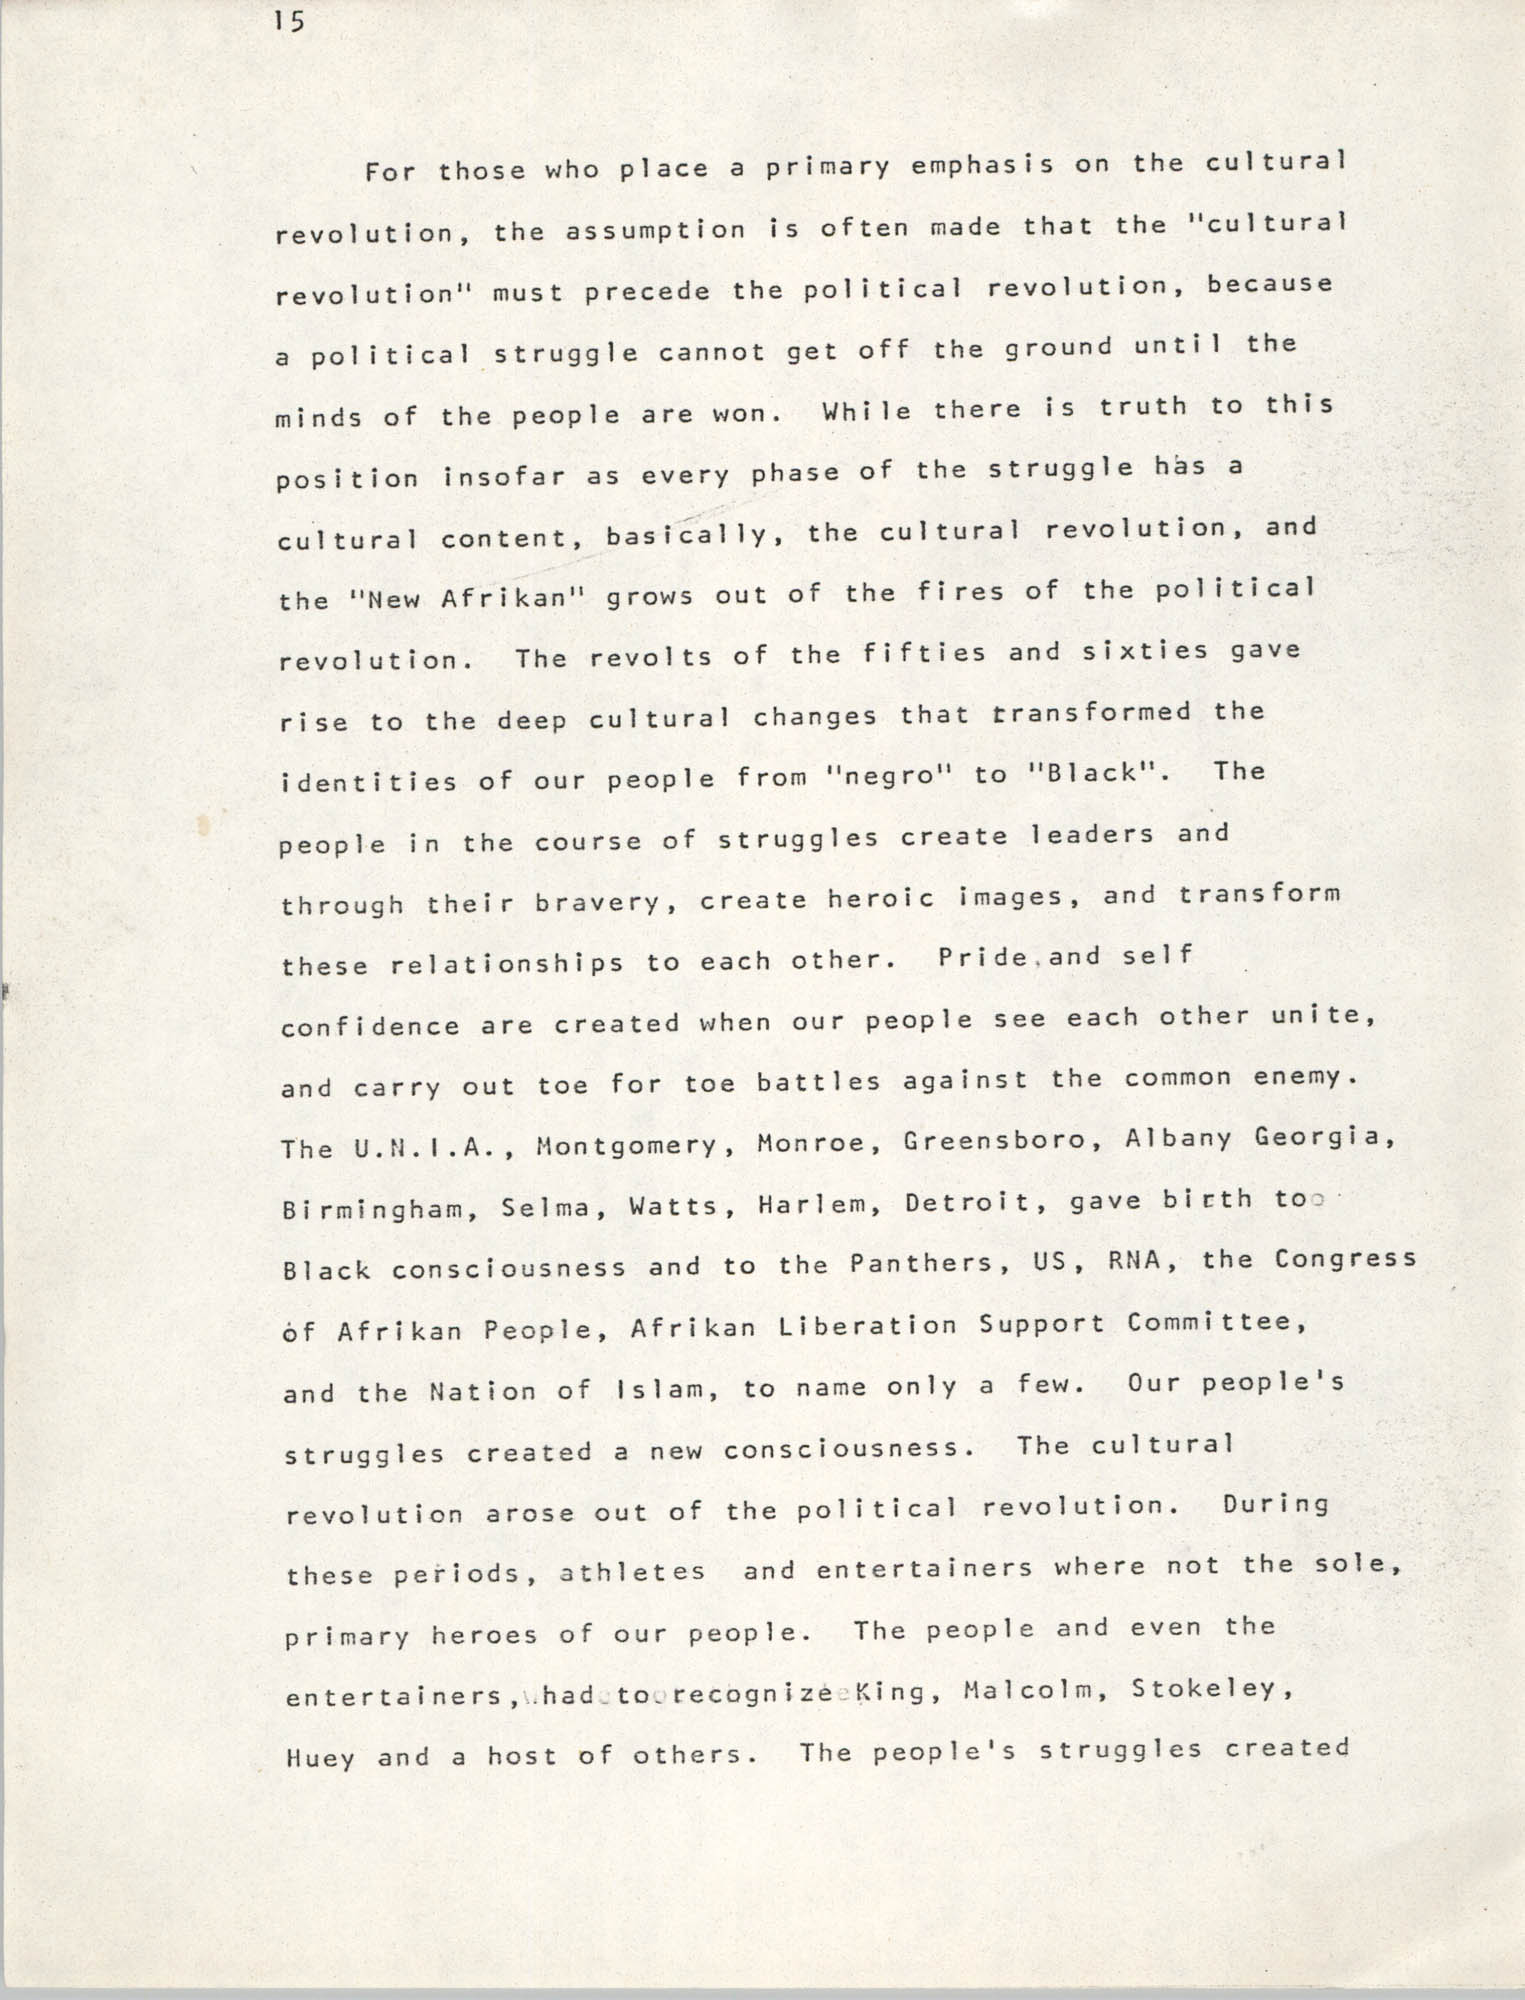 Pan-African Committee of the Black United Front, Page 15